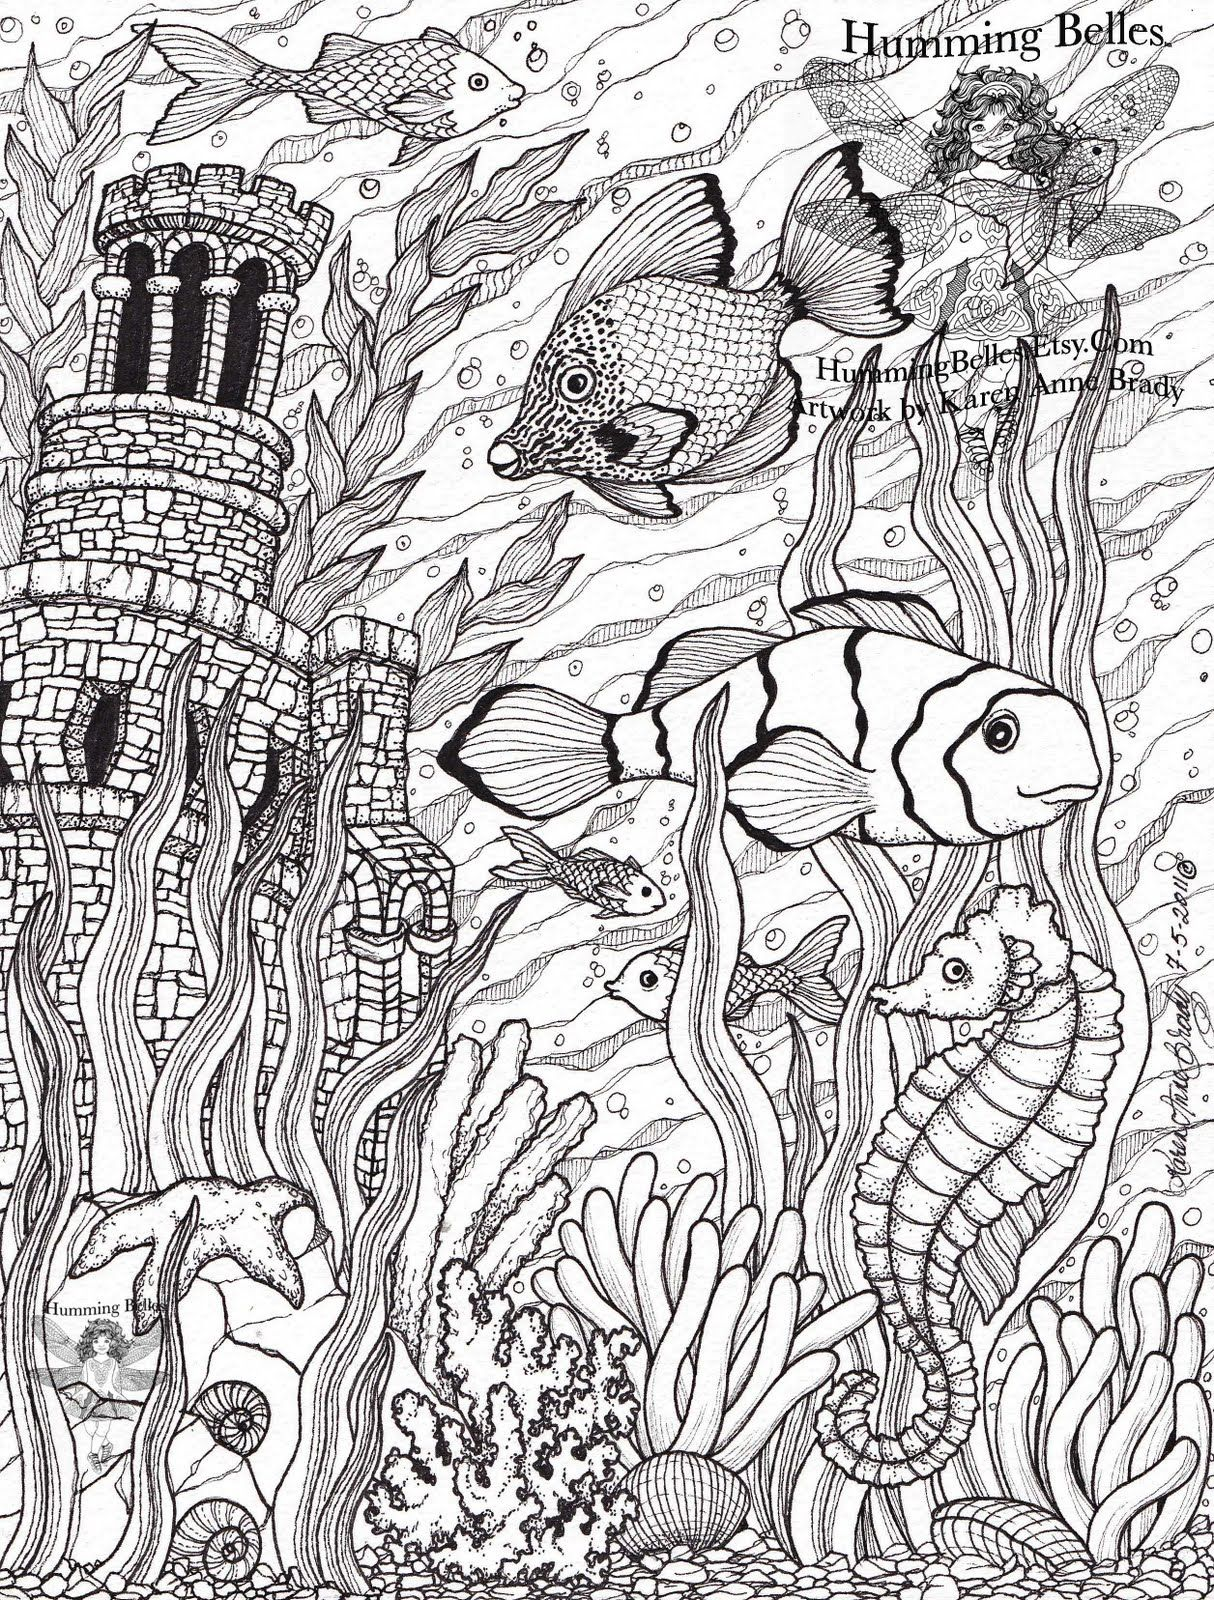 Colouring sheets hard - Intricate Coloring Pages For Adults Humming Belles